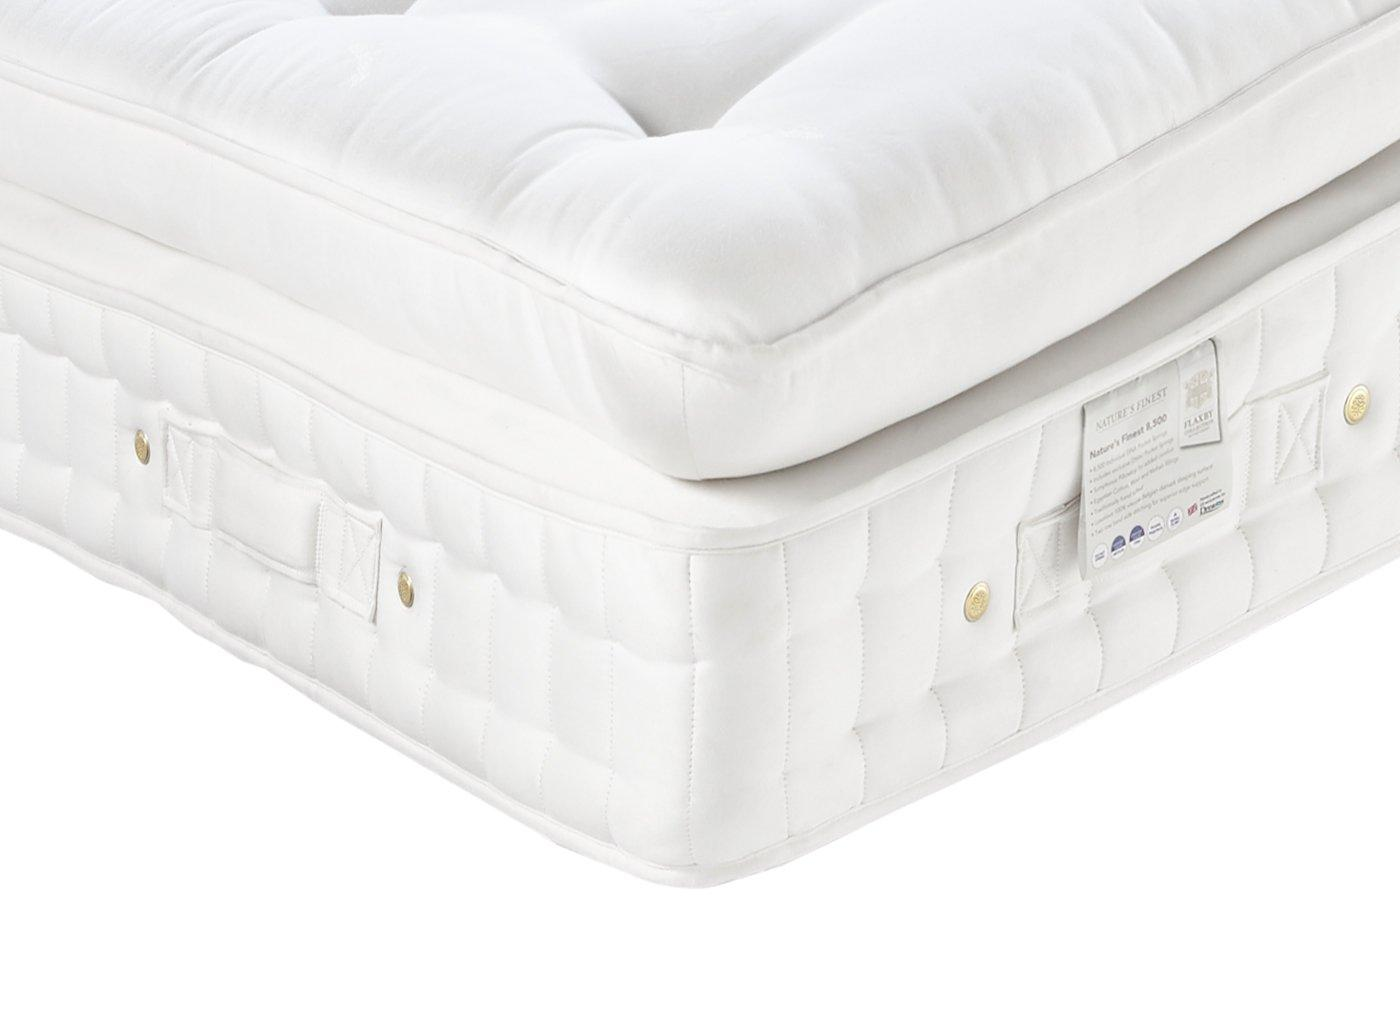 Flaxby Natures Finest 8500 Dnair Mattress - Medium / Firm 3'0 Single